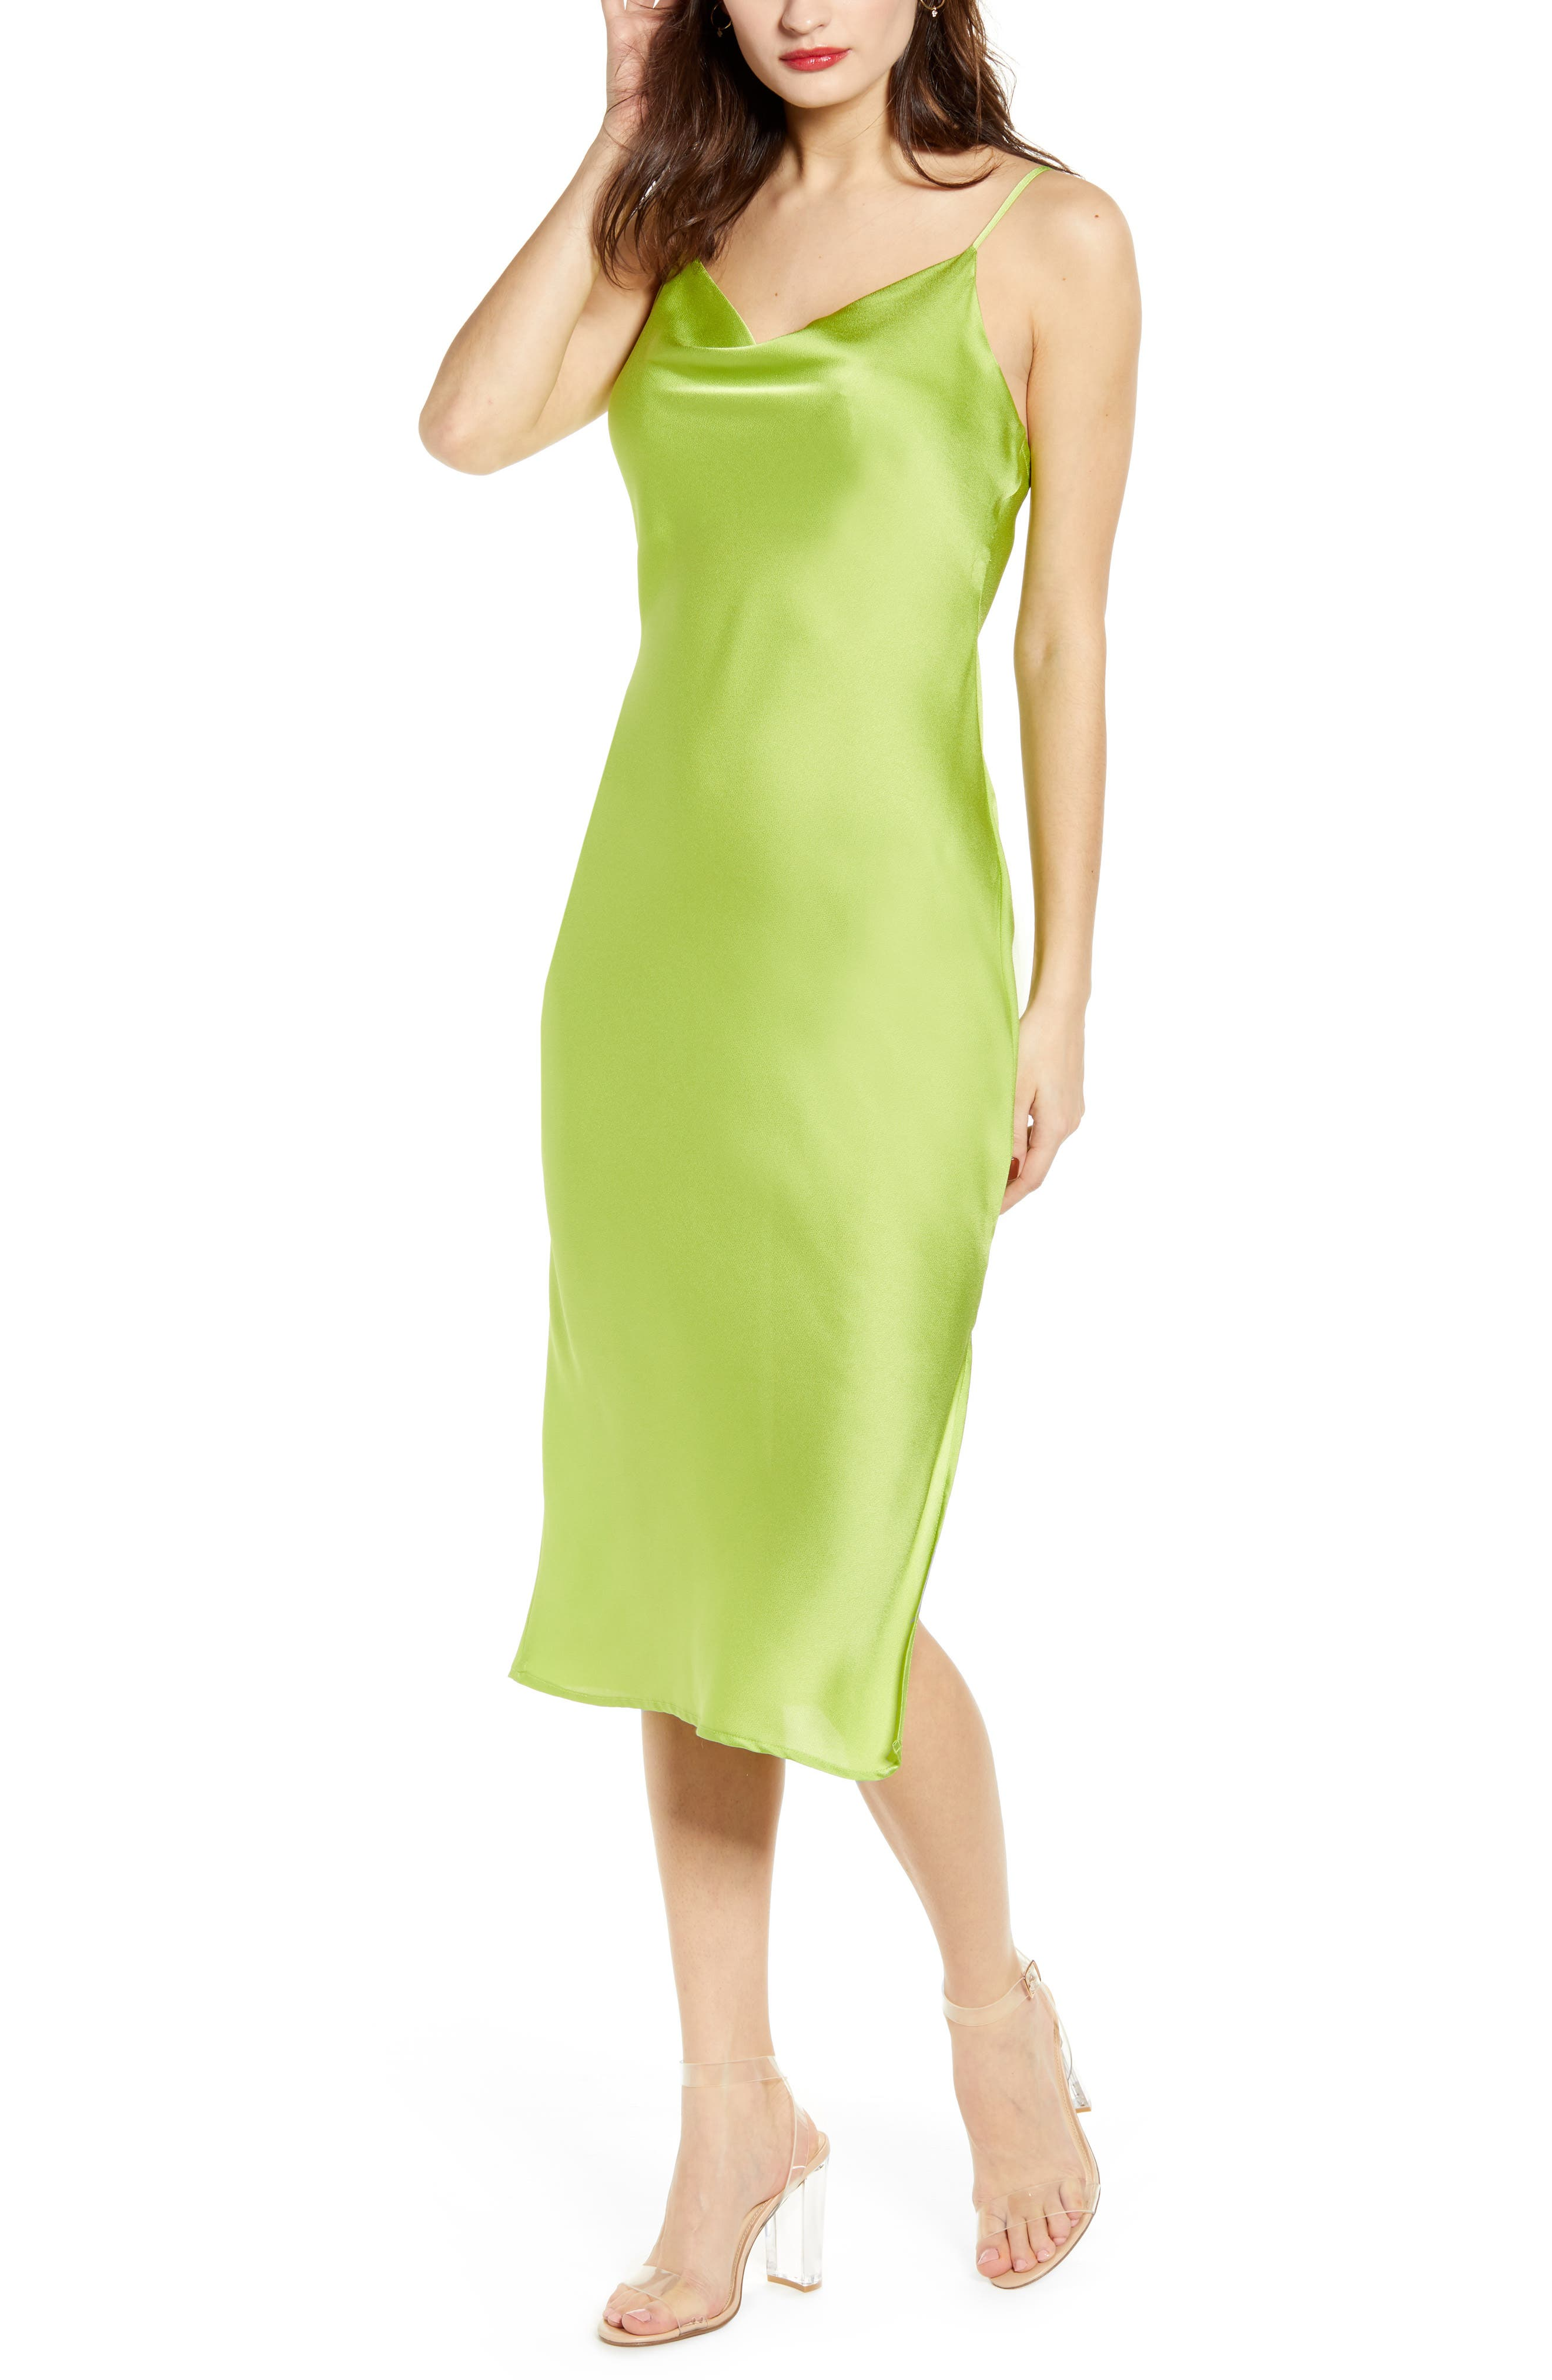 J.o.a. Midi Slipdress, Green